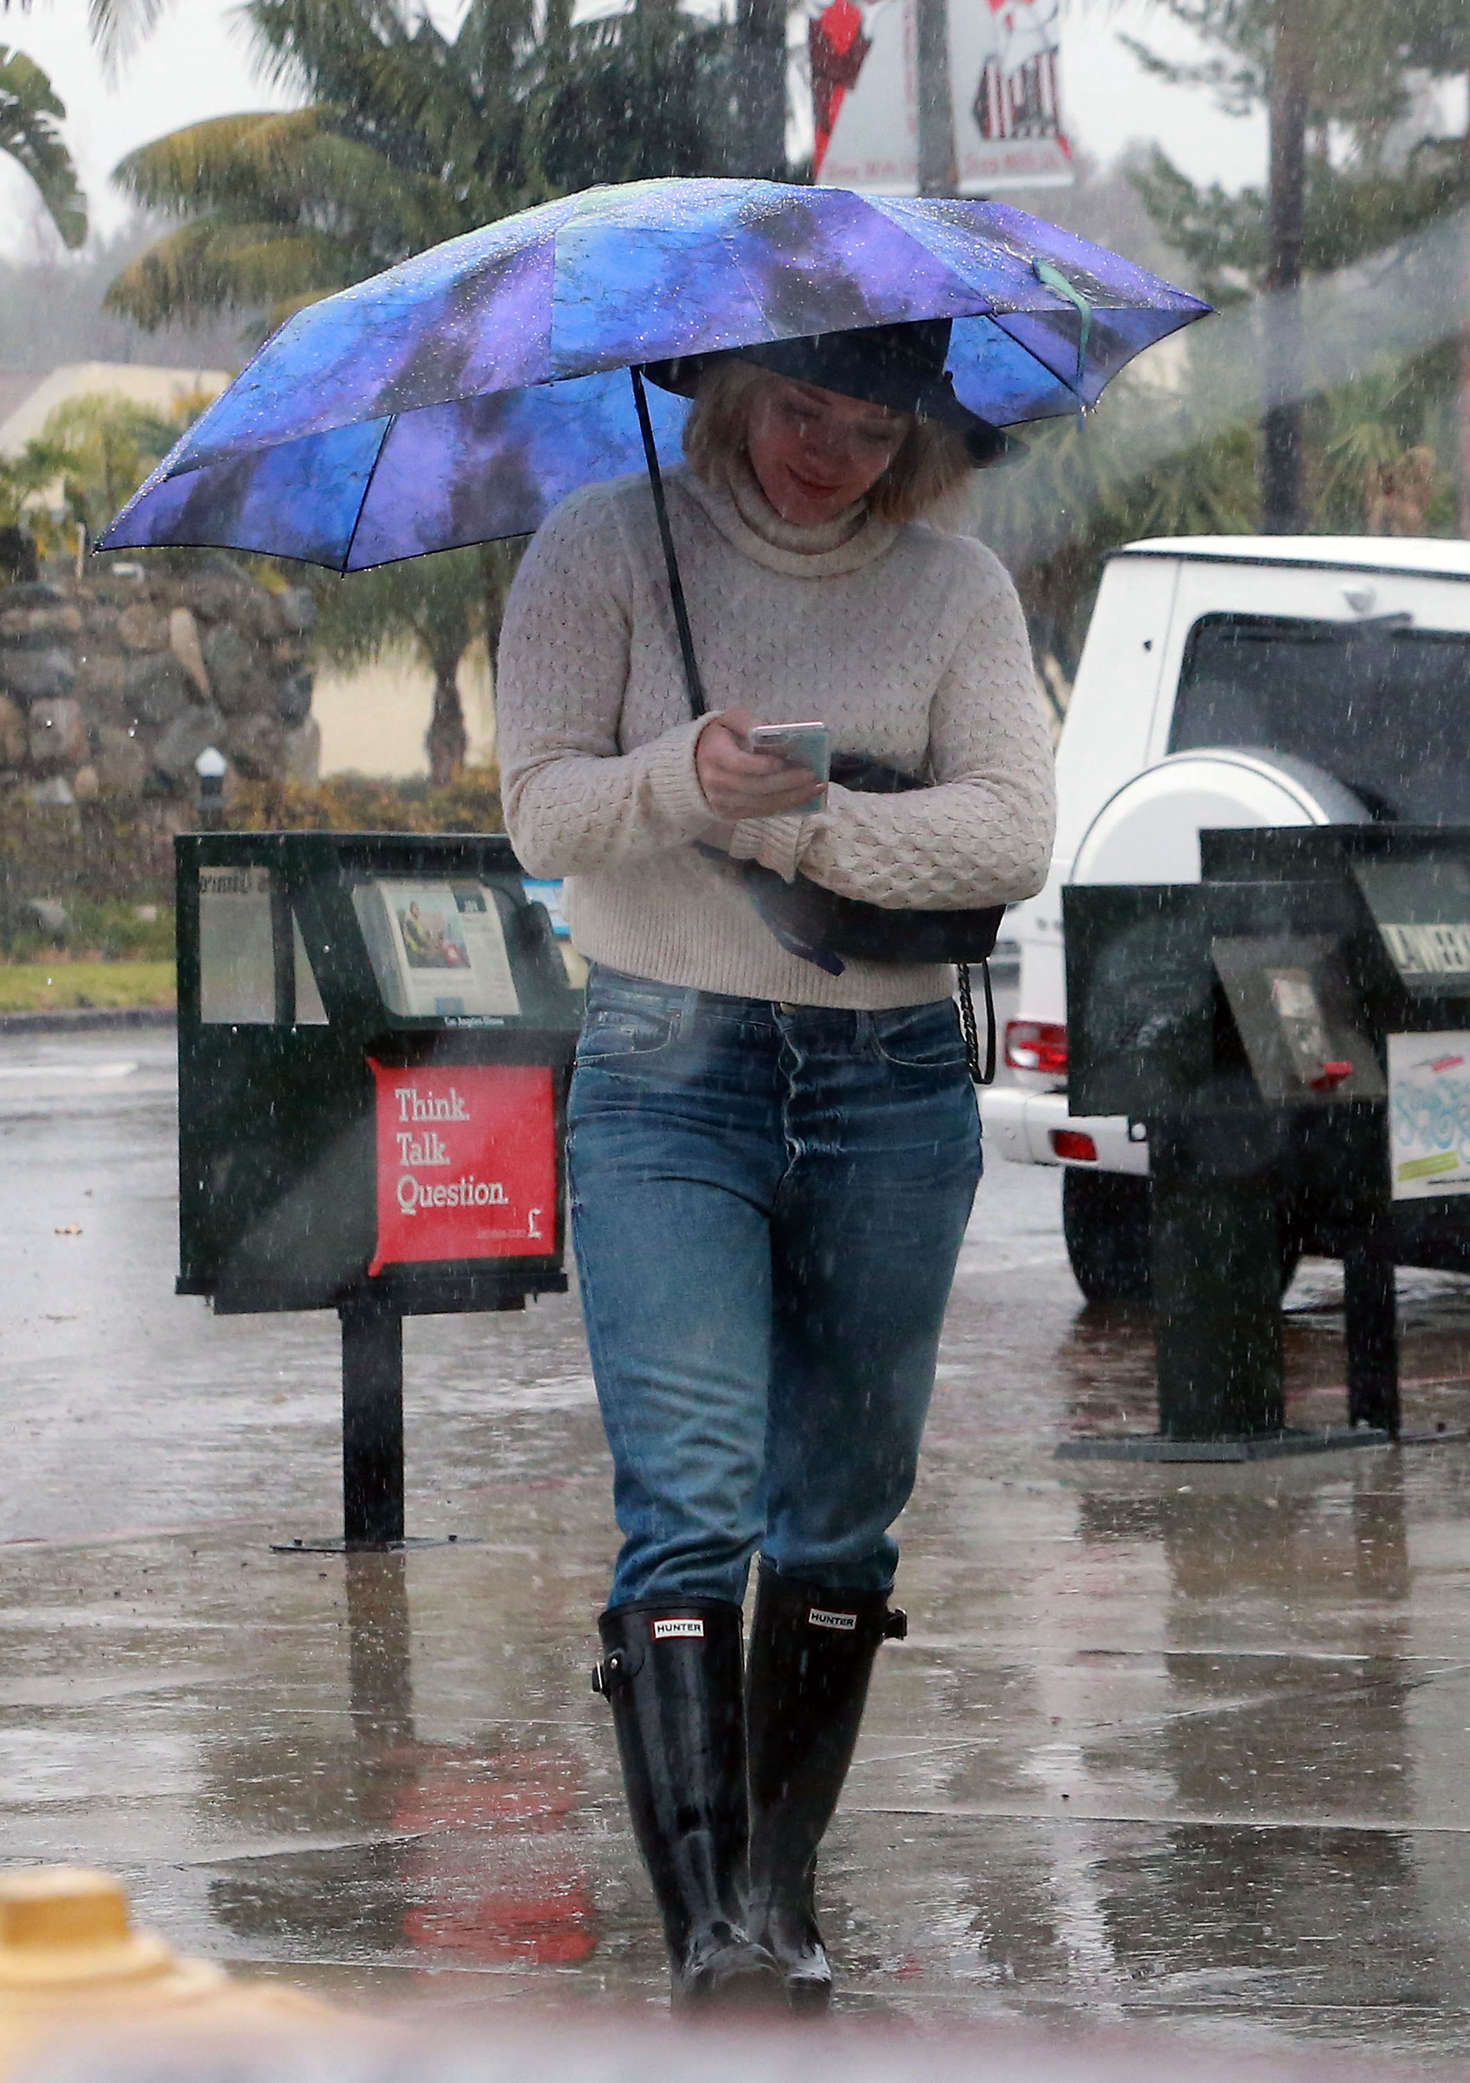 Hilary Duff 2016 : Hilary Duff in Jeans out on a rainy day -01